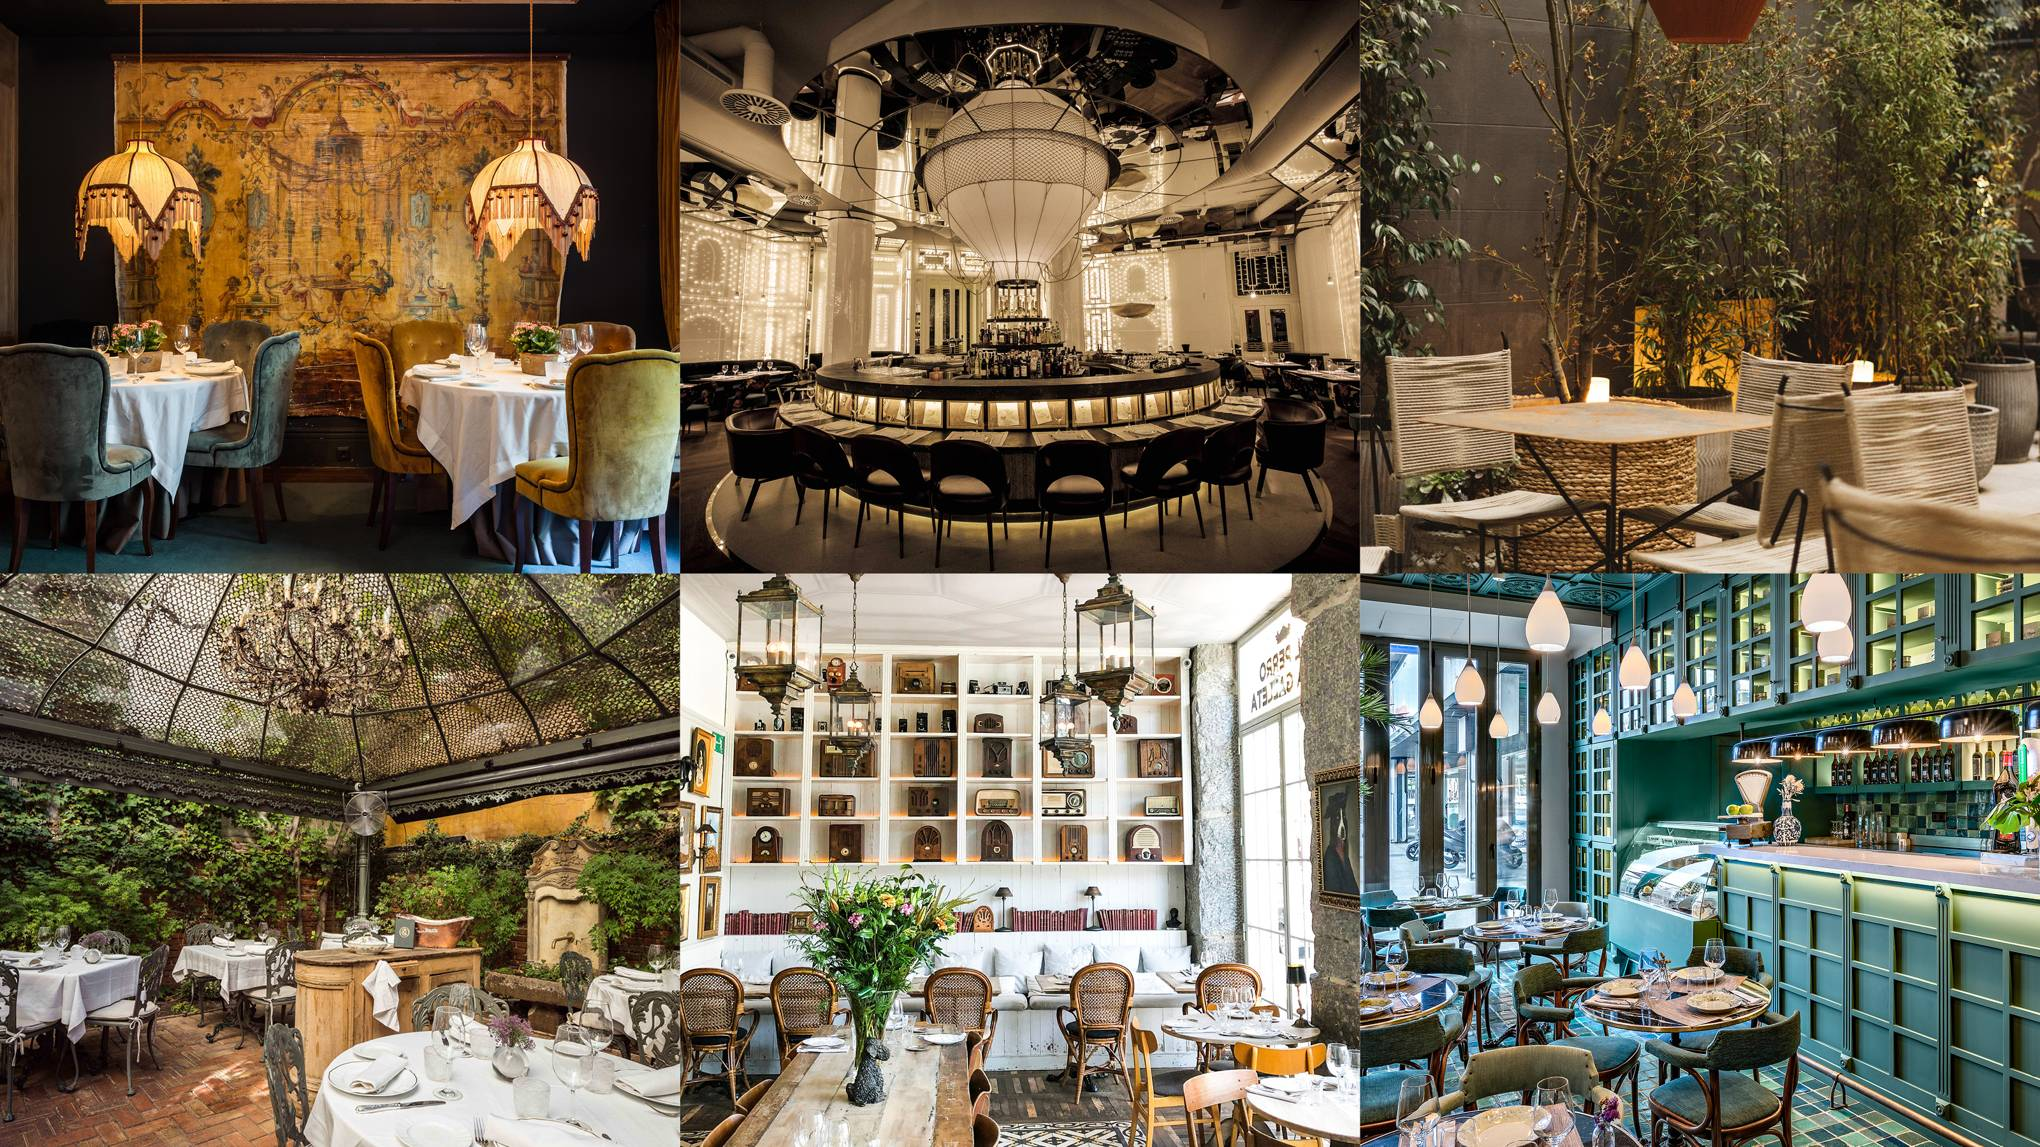 The 10 most beautiful restaurants in Madrid